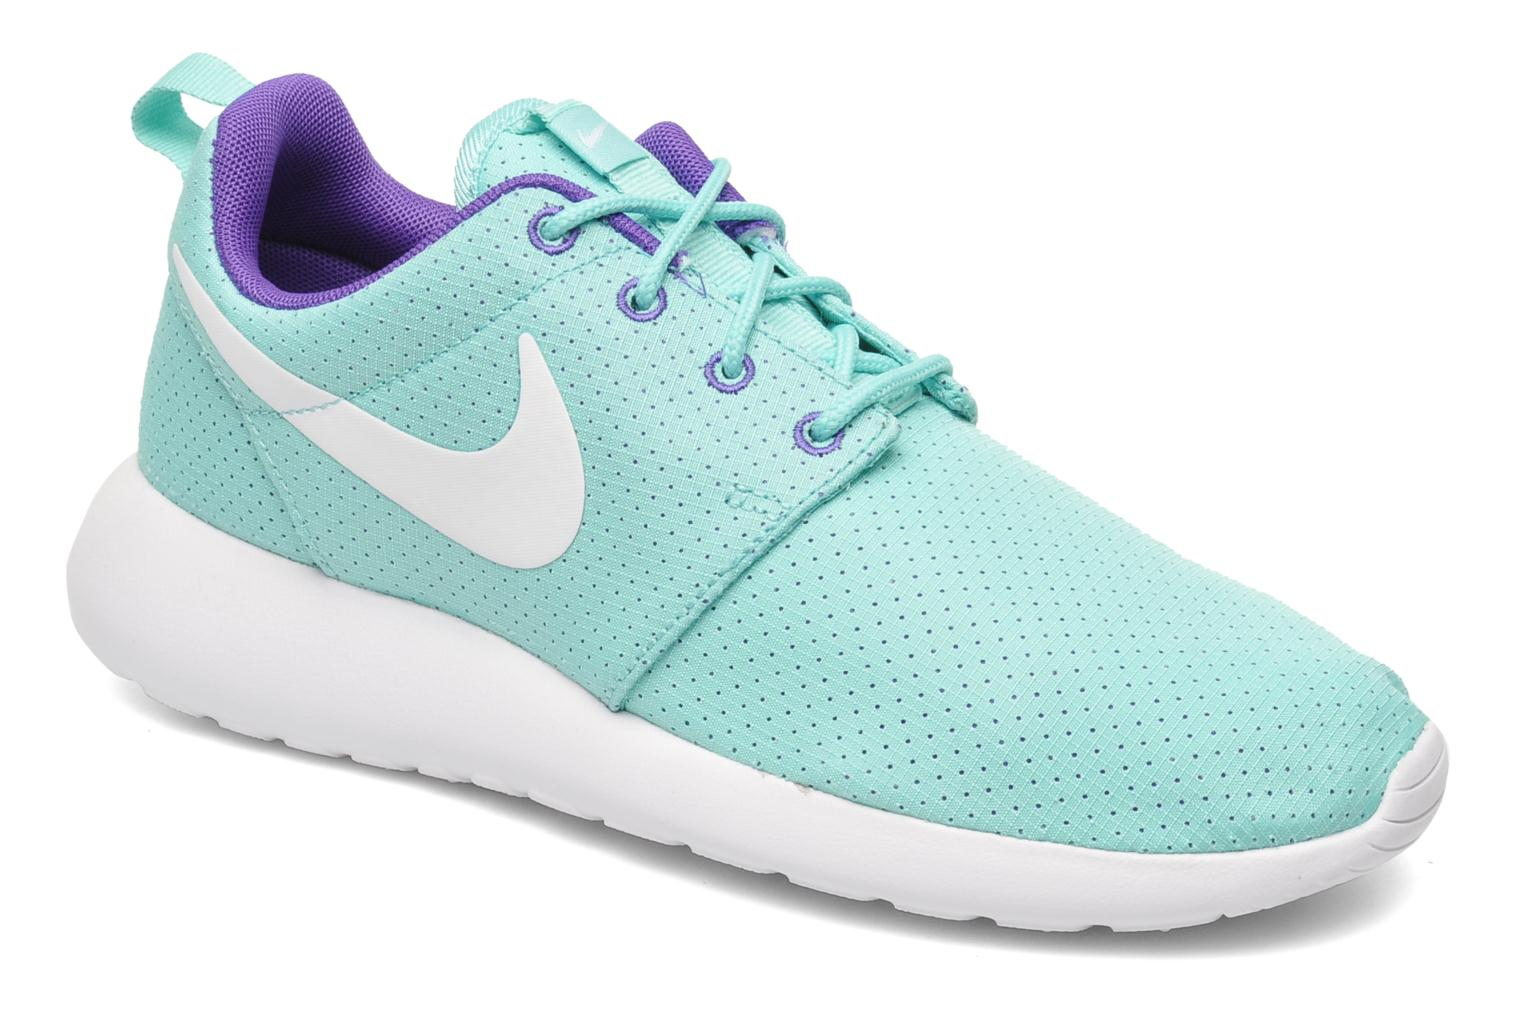 pretty nice b40a5 6c031 Baskets Nike Wmns Nike Roshe One Vert vue détail paire